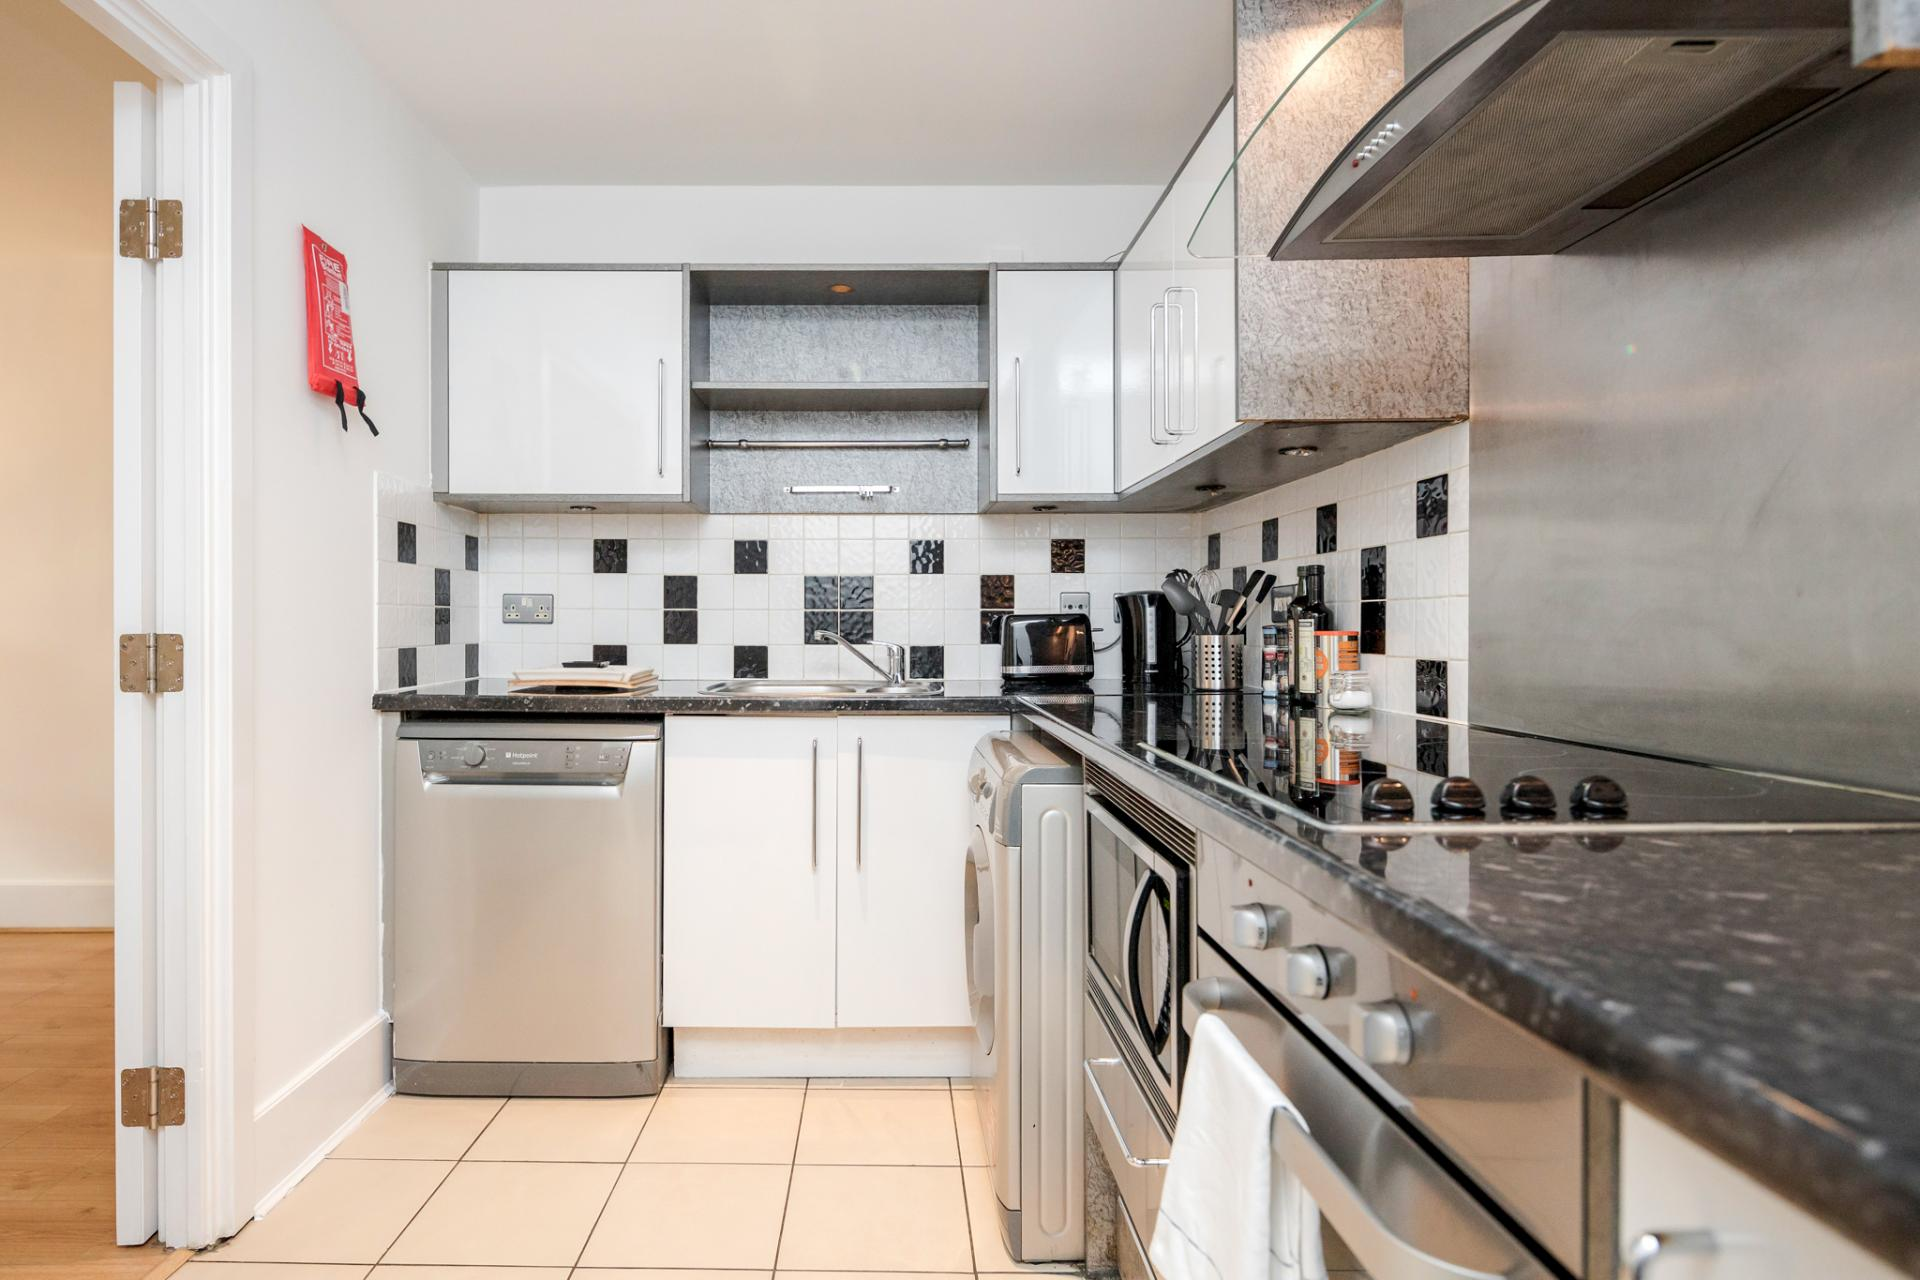 Kitchen at St Georges Wharf Apartment, Vauxhall, London - Citybase Apartments